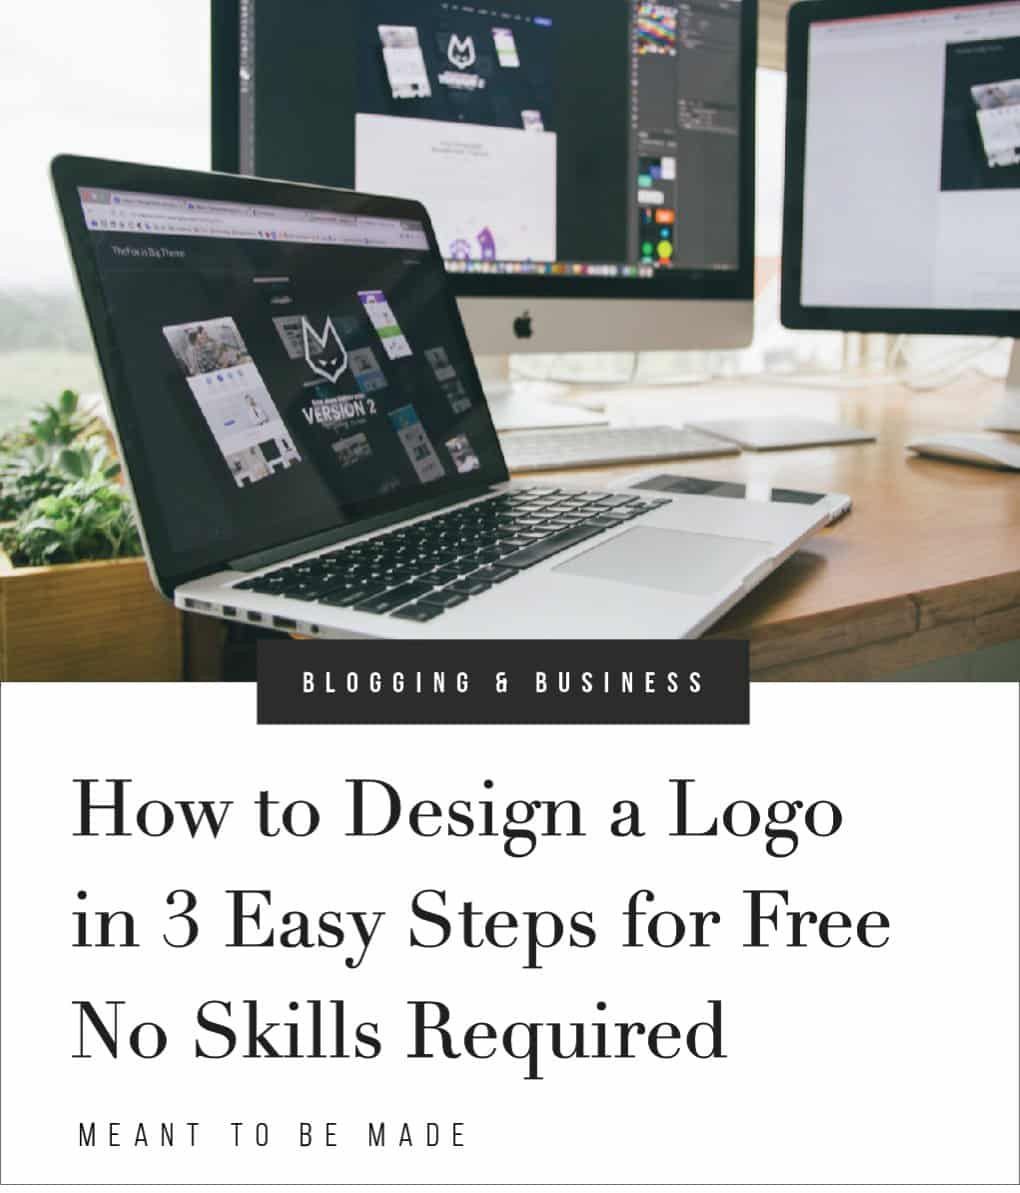 How to Design a Logo in 3 Easy Steps for Free, No Skills Required